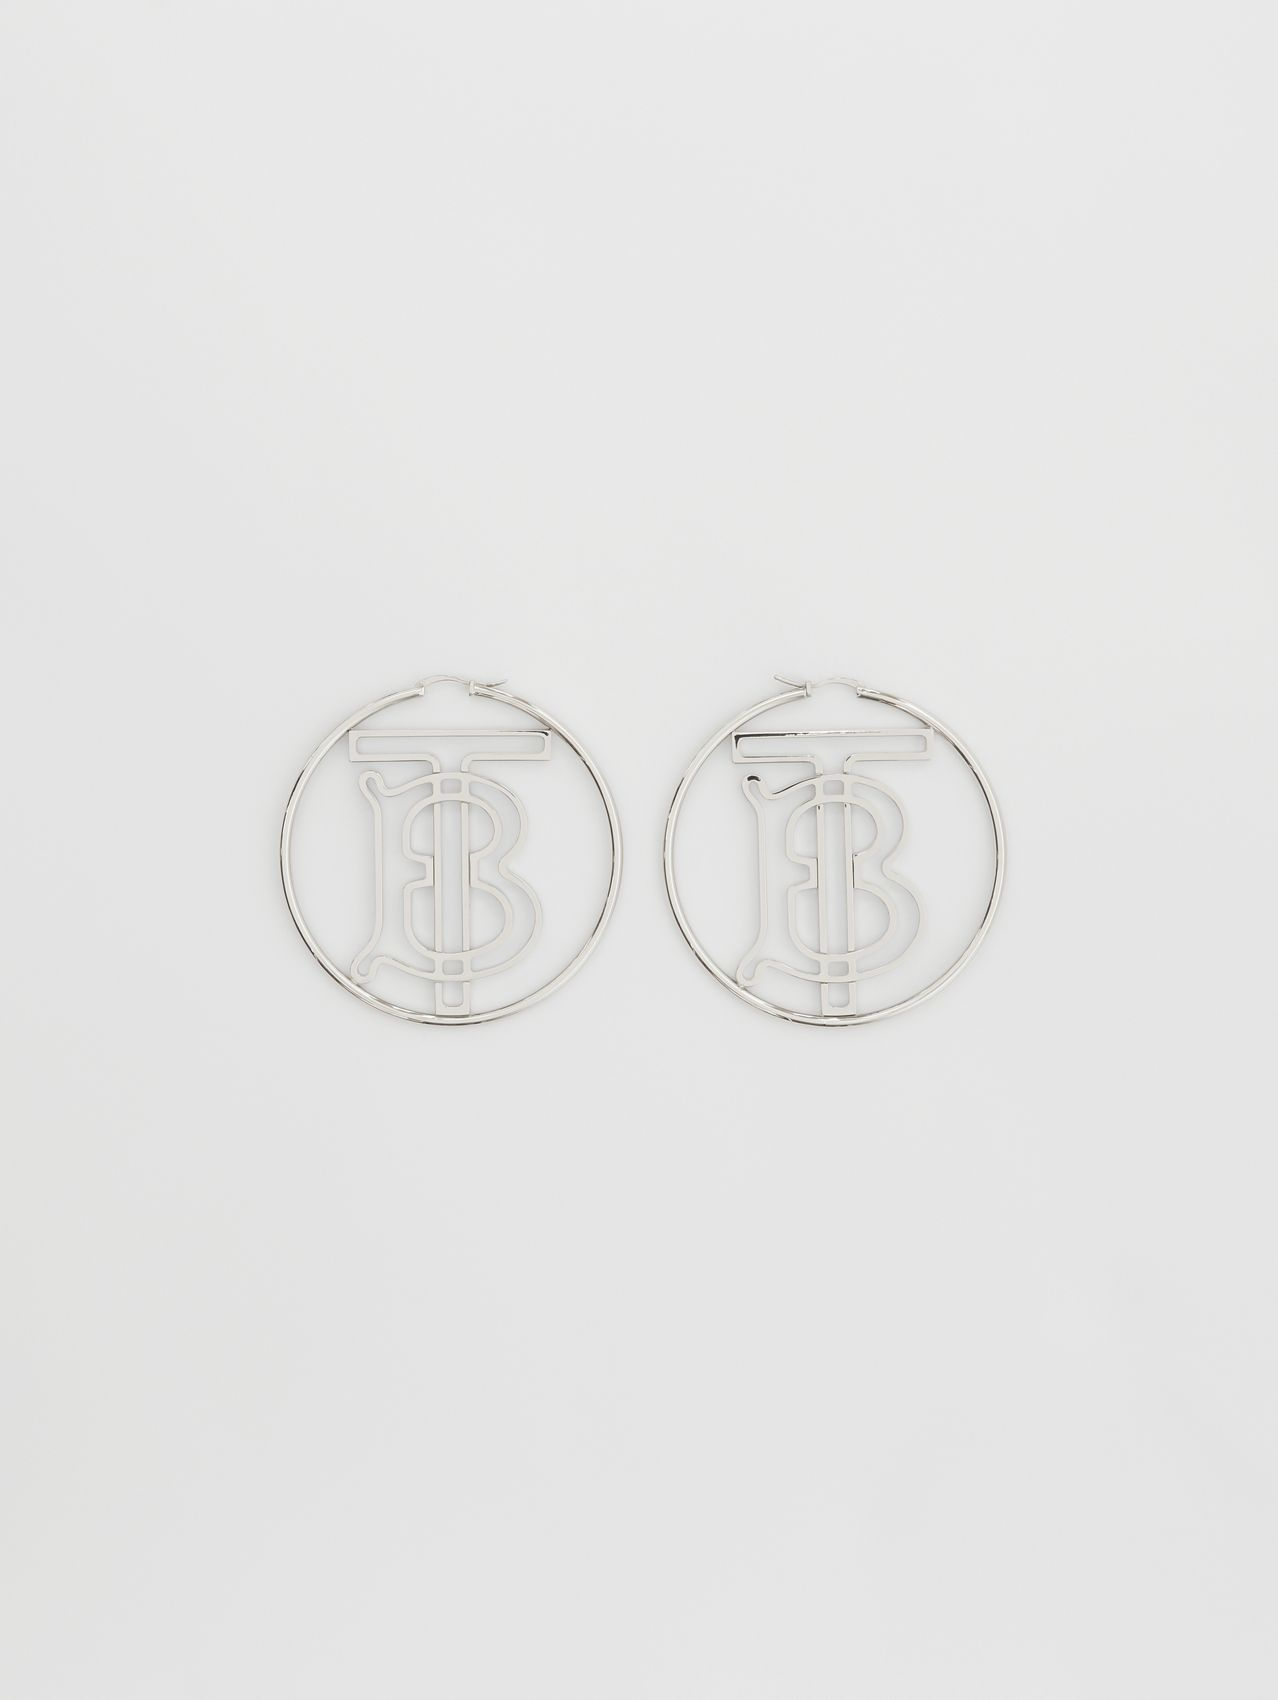 Palladium-plated Monogram Motif Hoop Earrings in Palladio